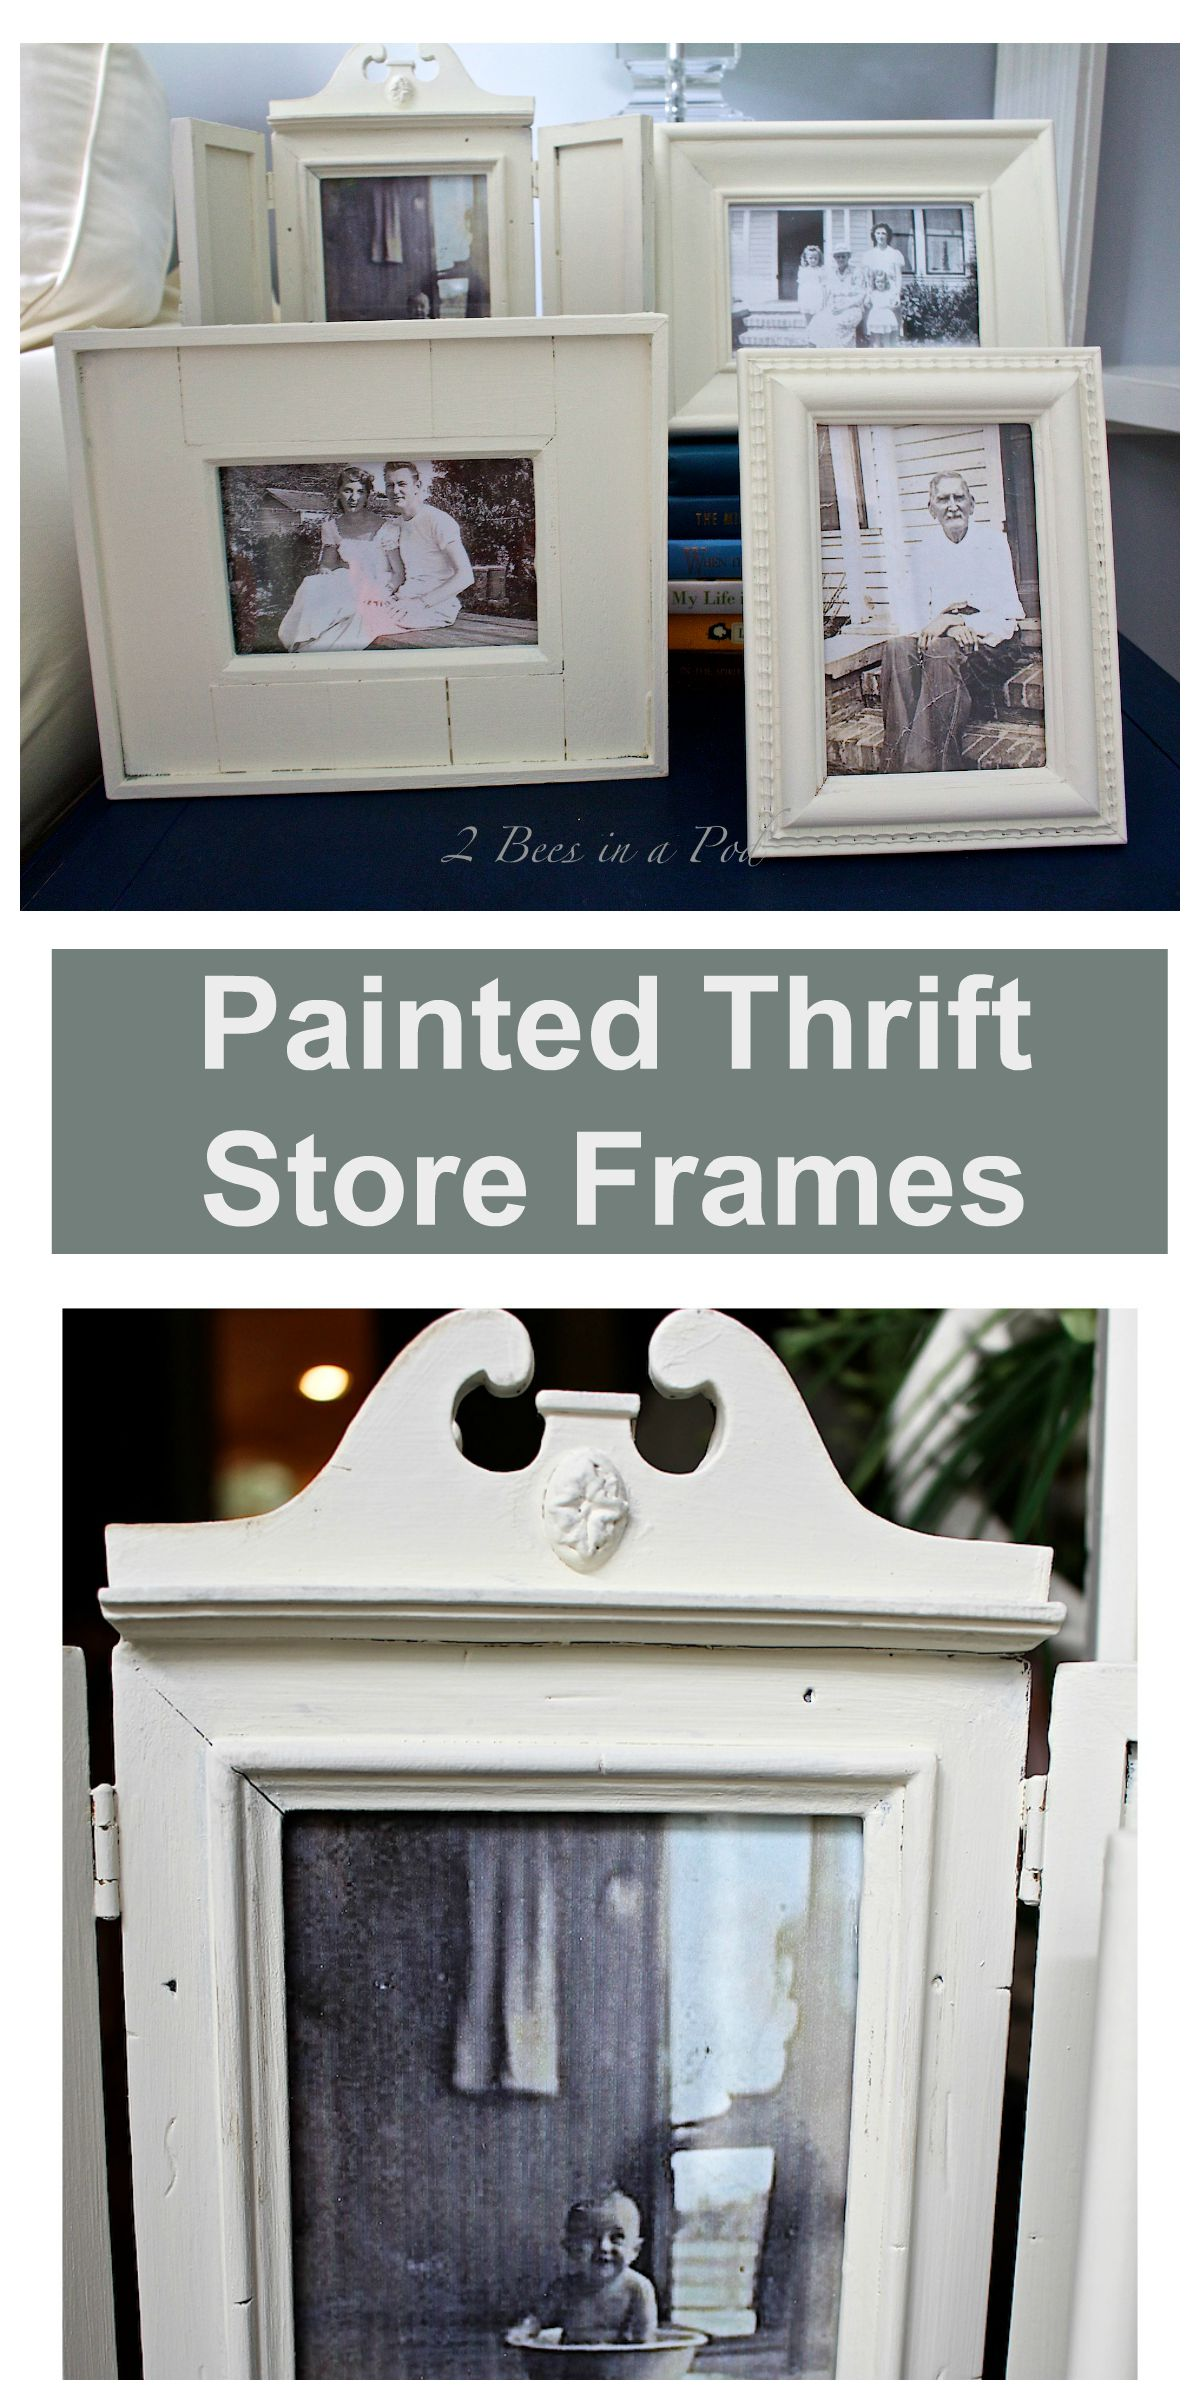 Painted Thrift Store Frames - take mismatched frames and create a cohesive look with paint.